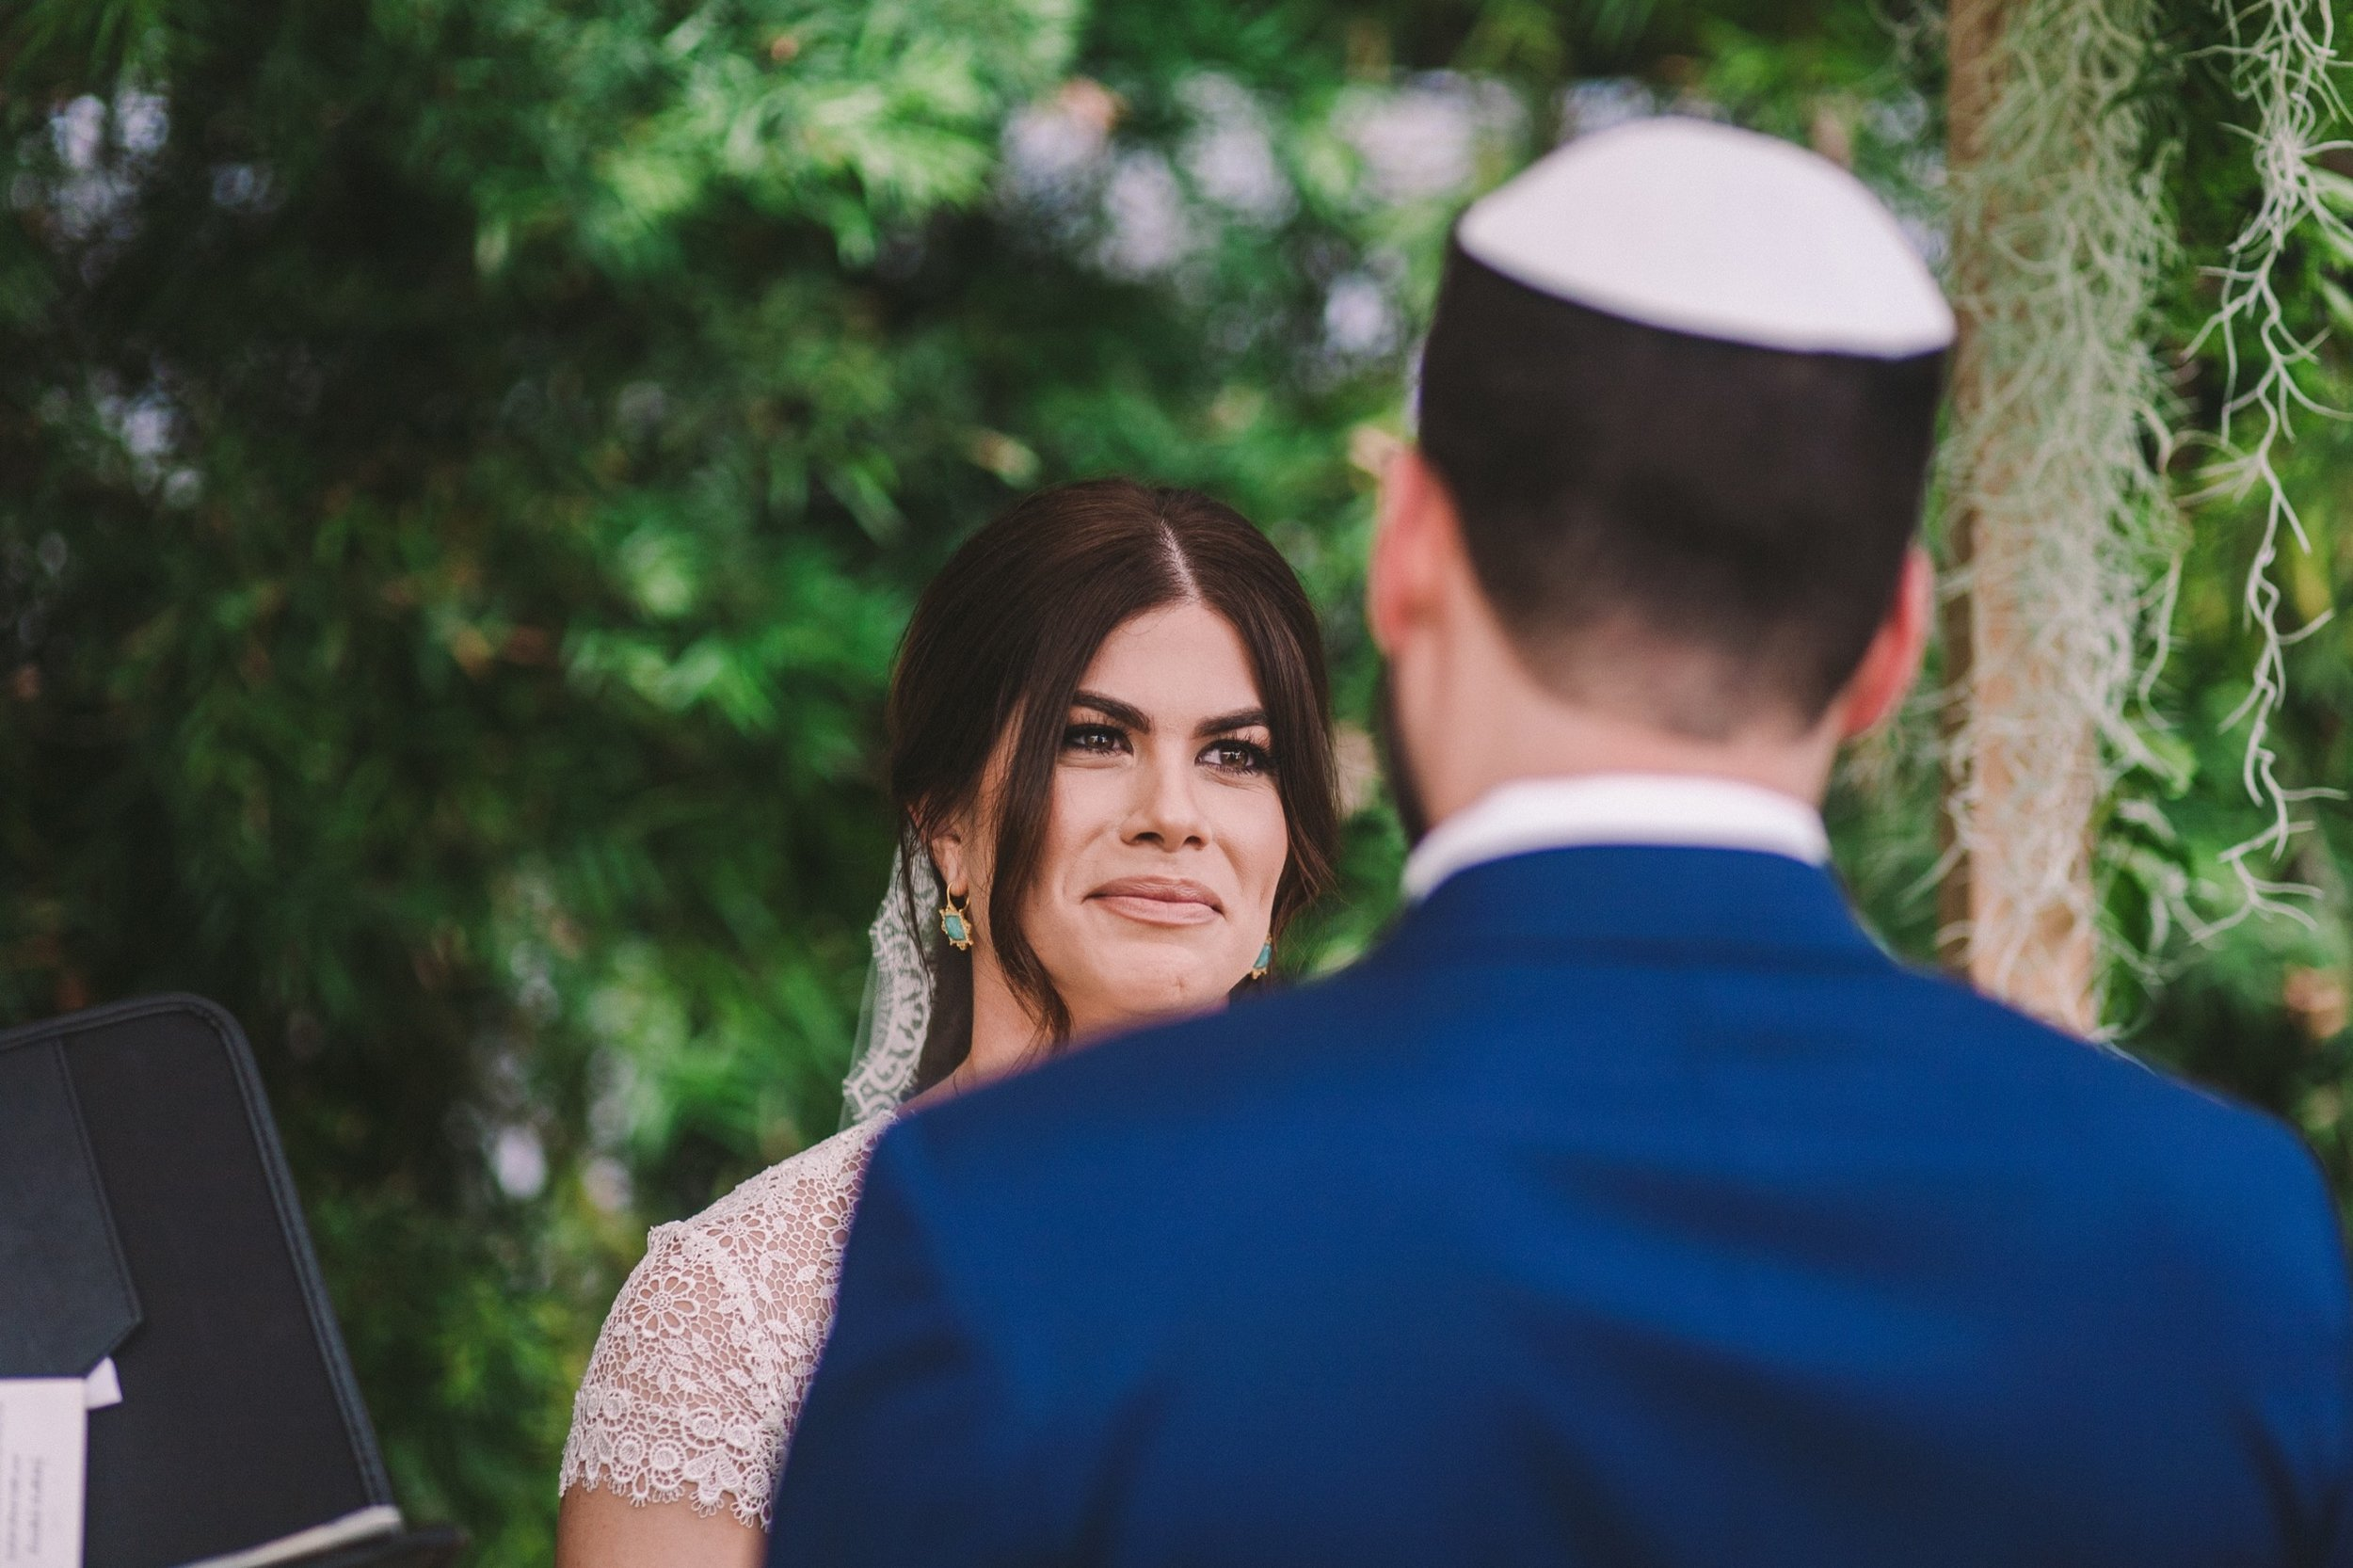 Tearful Happy Bride at Modern Jewish Wedding in Shelldance Orchid Gardens